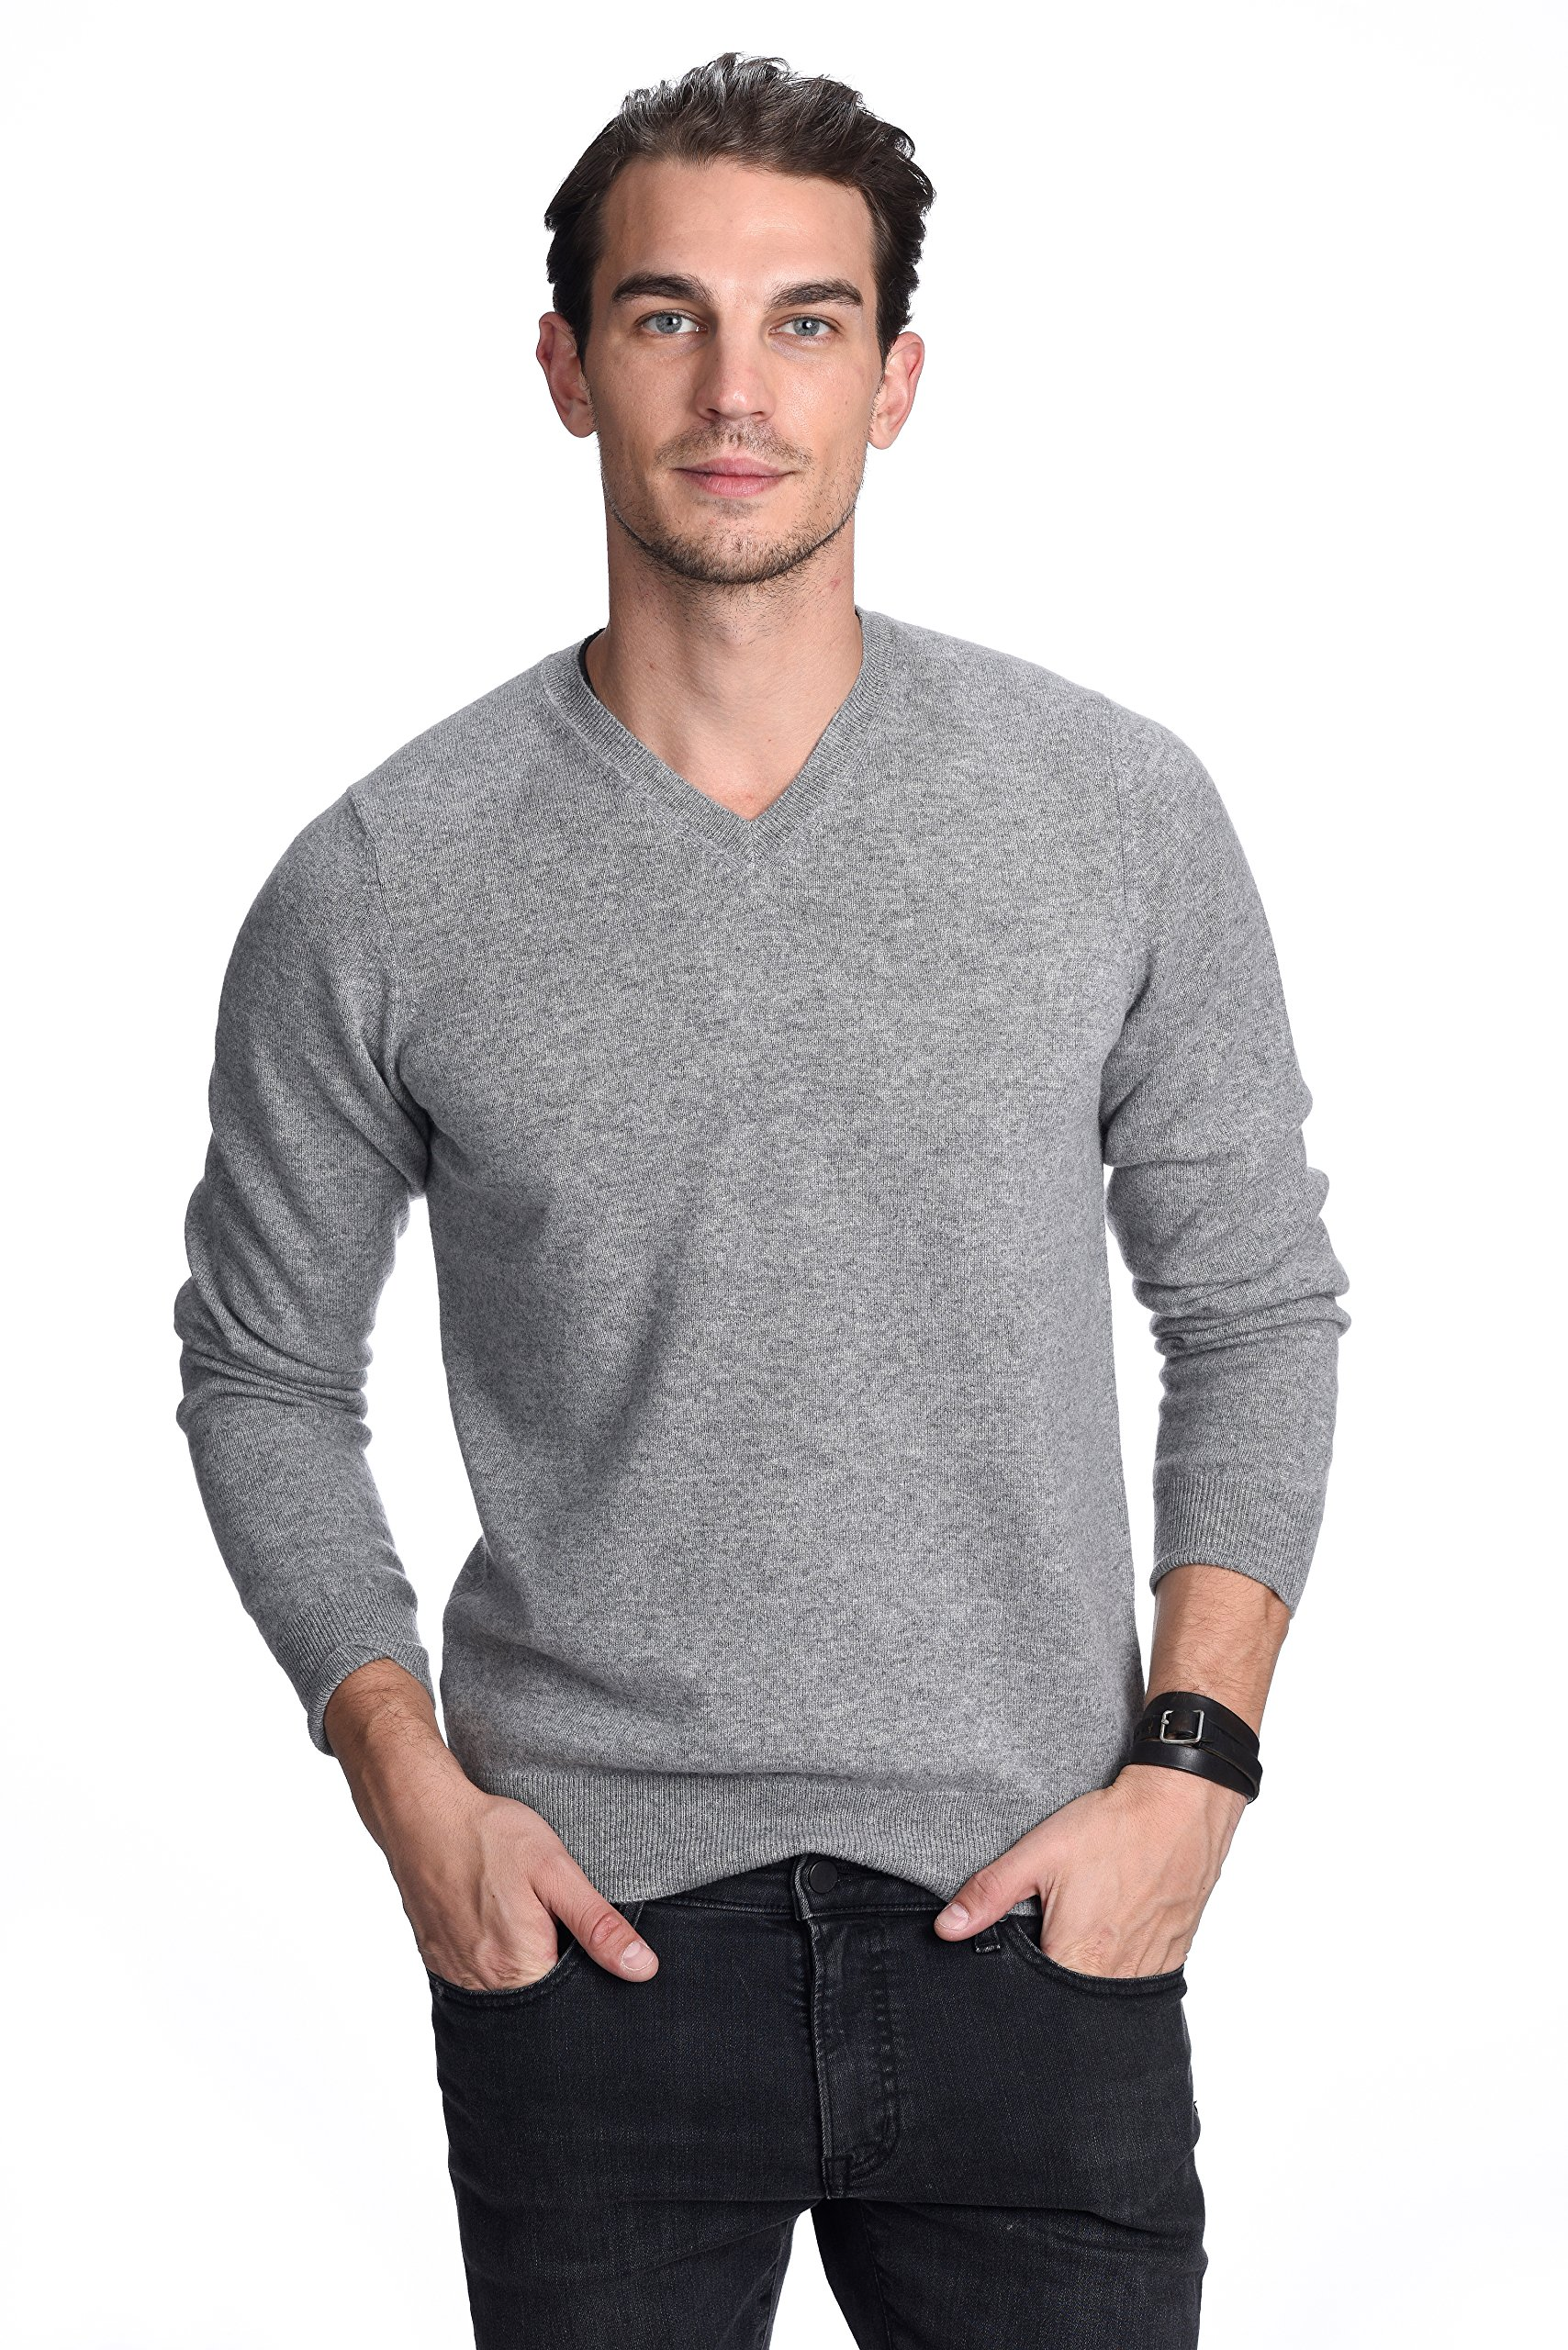 State Cashmere Men's 100% Pure Cashmere Long Sleeve Pullover V Neck Sweater (Large, Heather Grey)